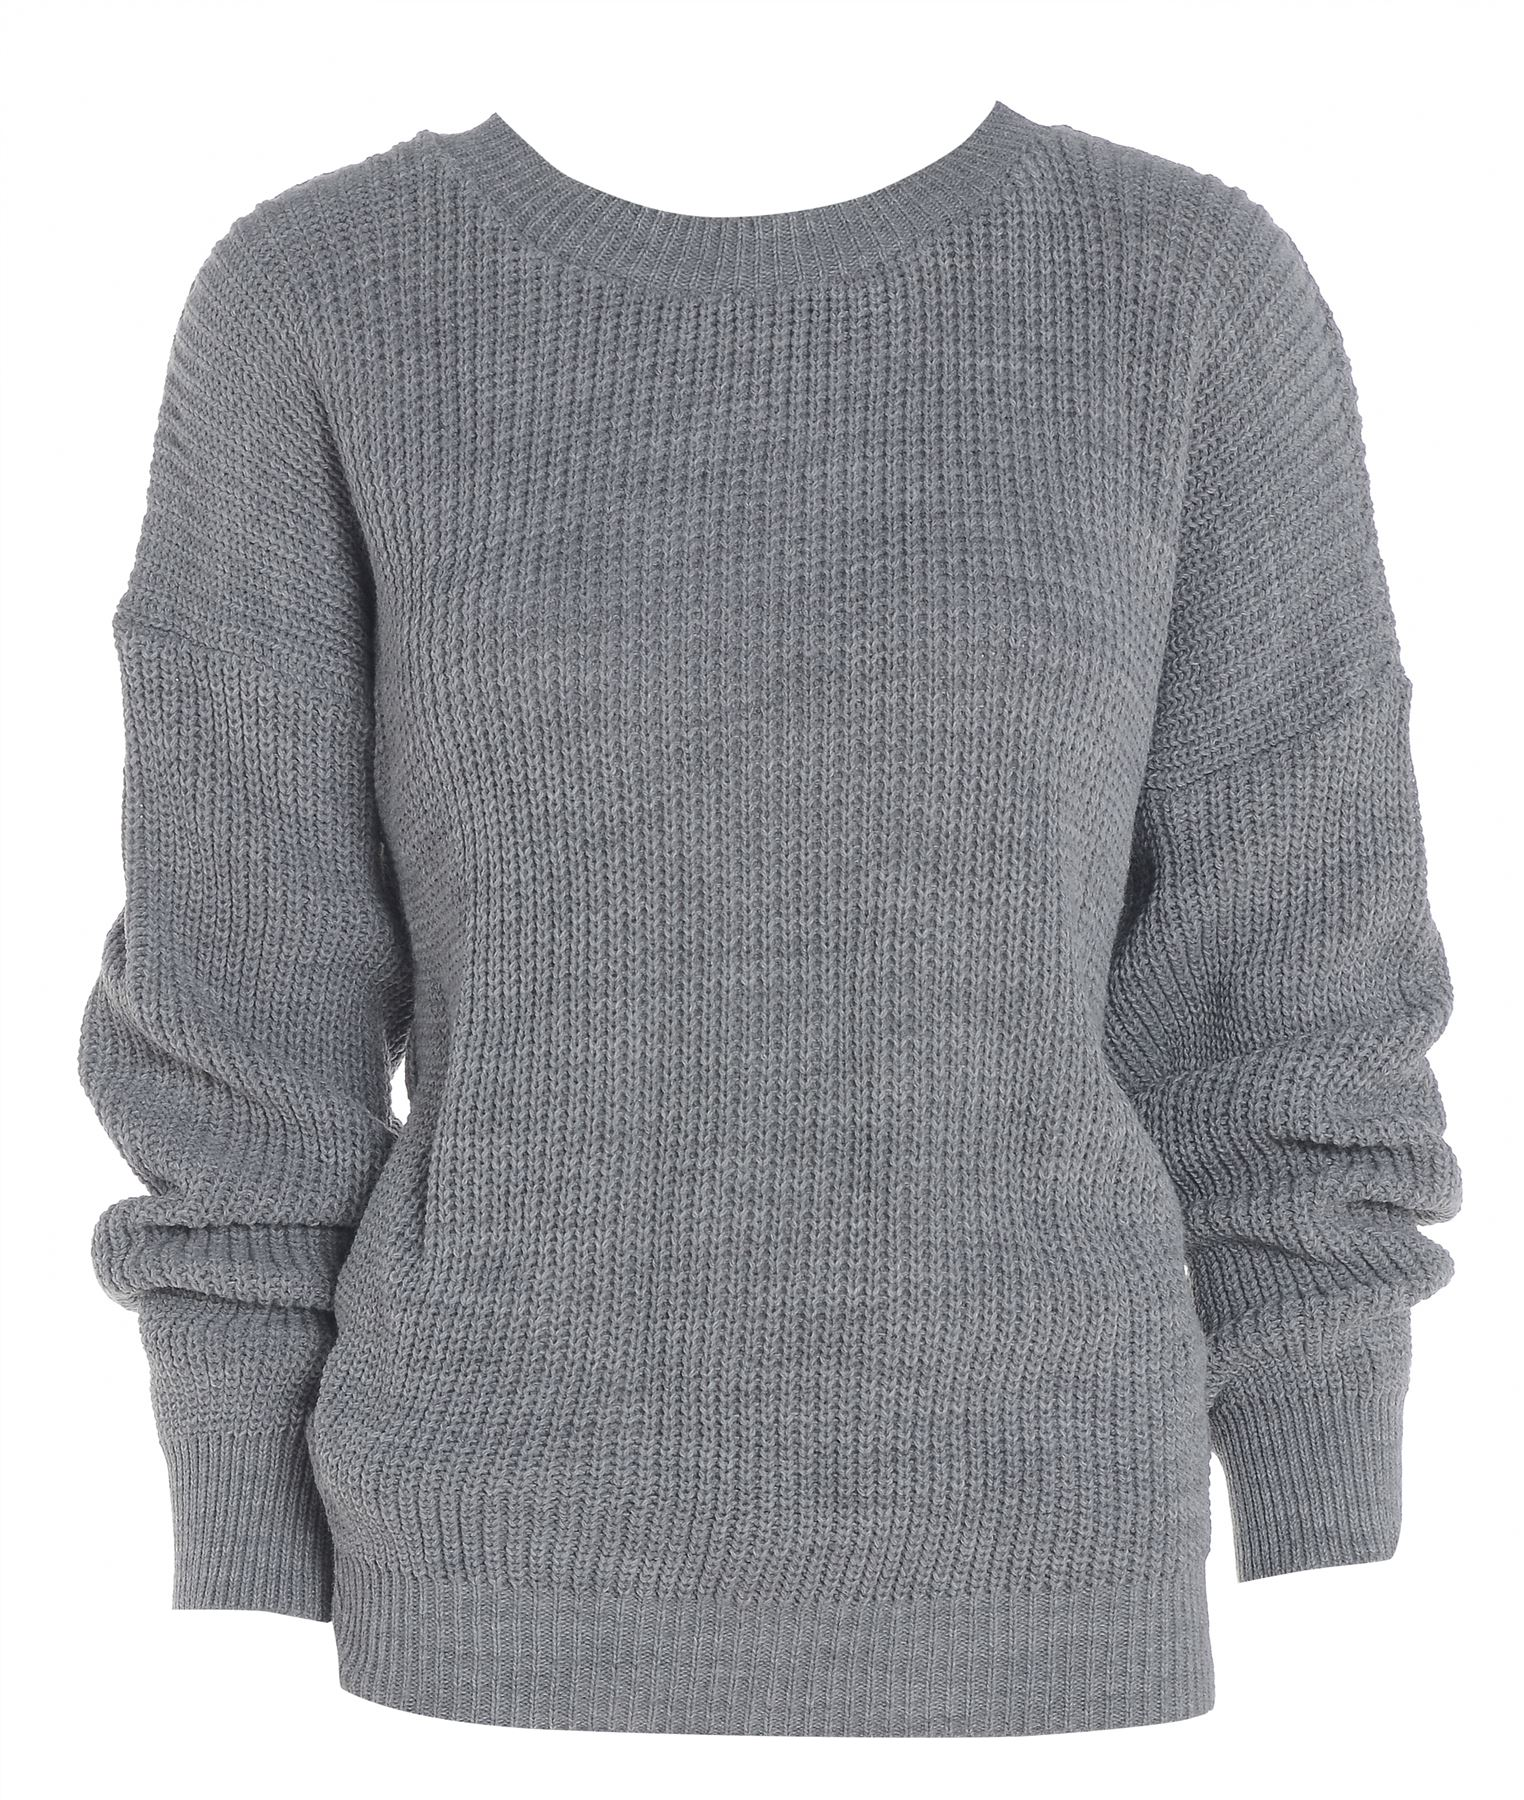 Womens Ladies PLAIN COLOUR BAGGY JUMPER Chunky Sweater Knitted Casual TOP eBay